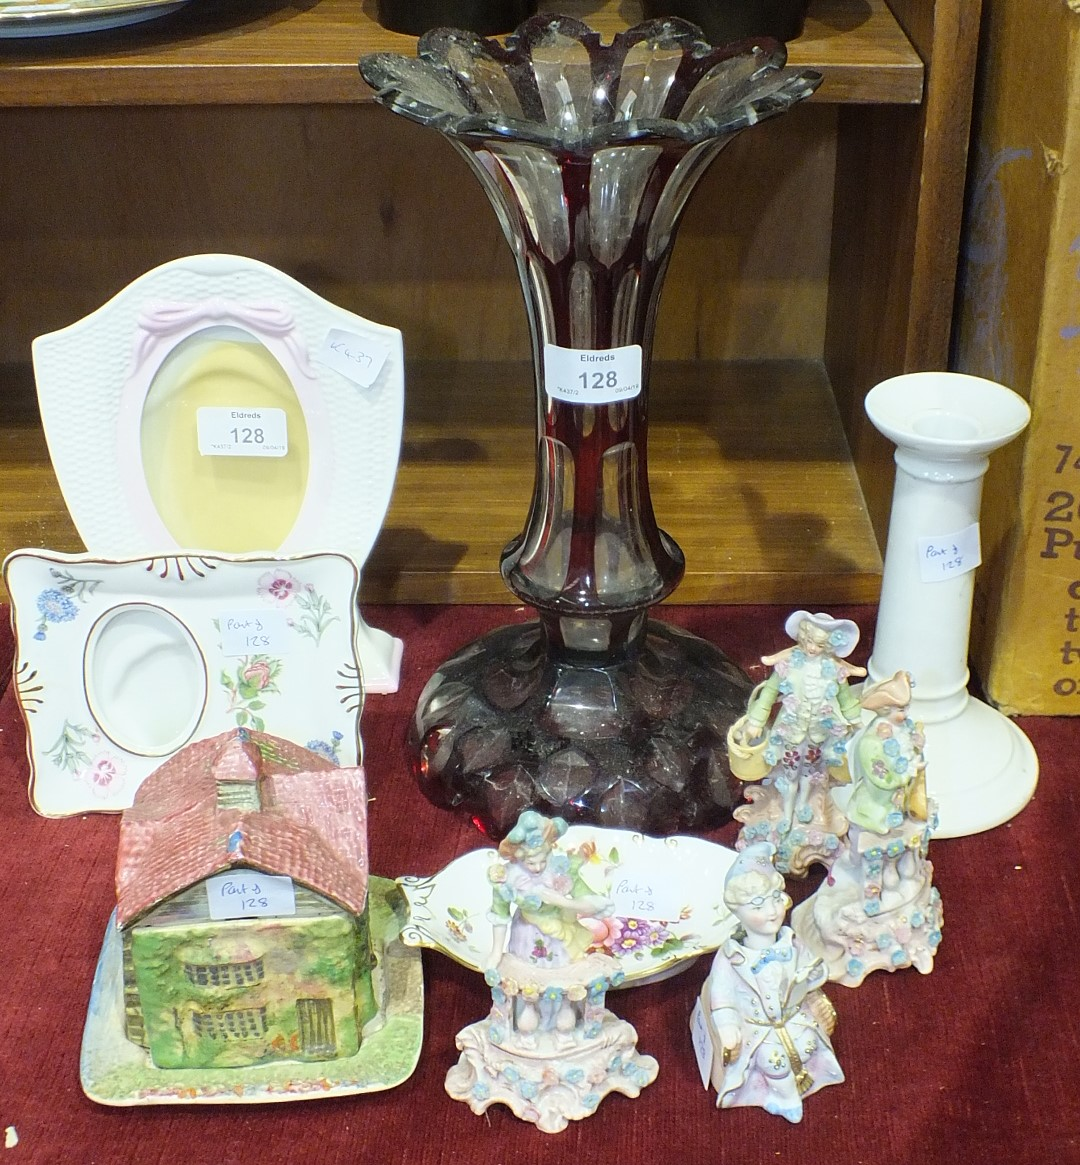 Lot 128 - An Aynsley porcelain photo frame and other 20th century ceramics and glass.